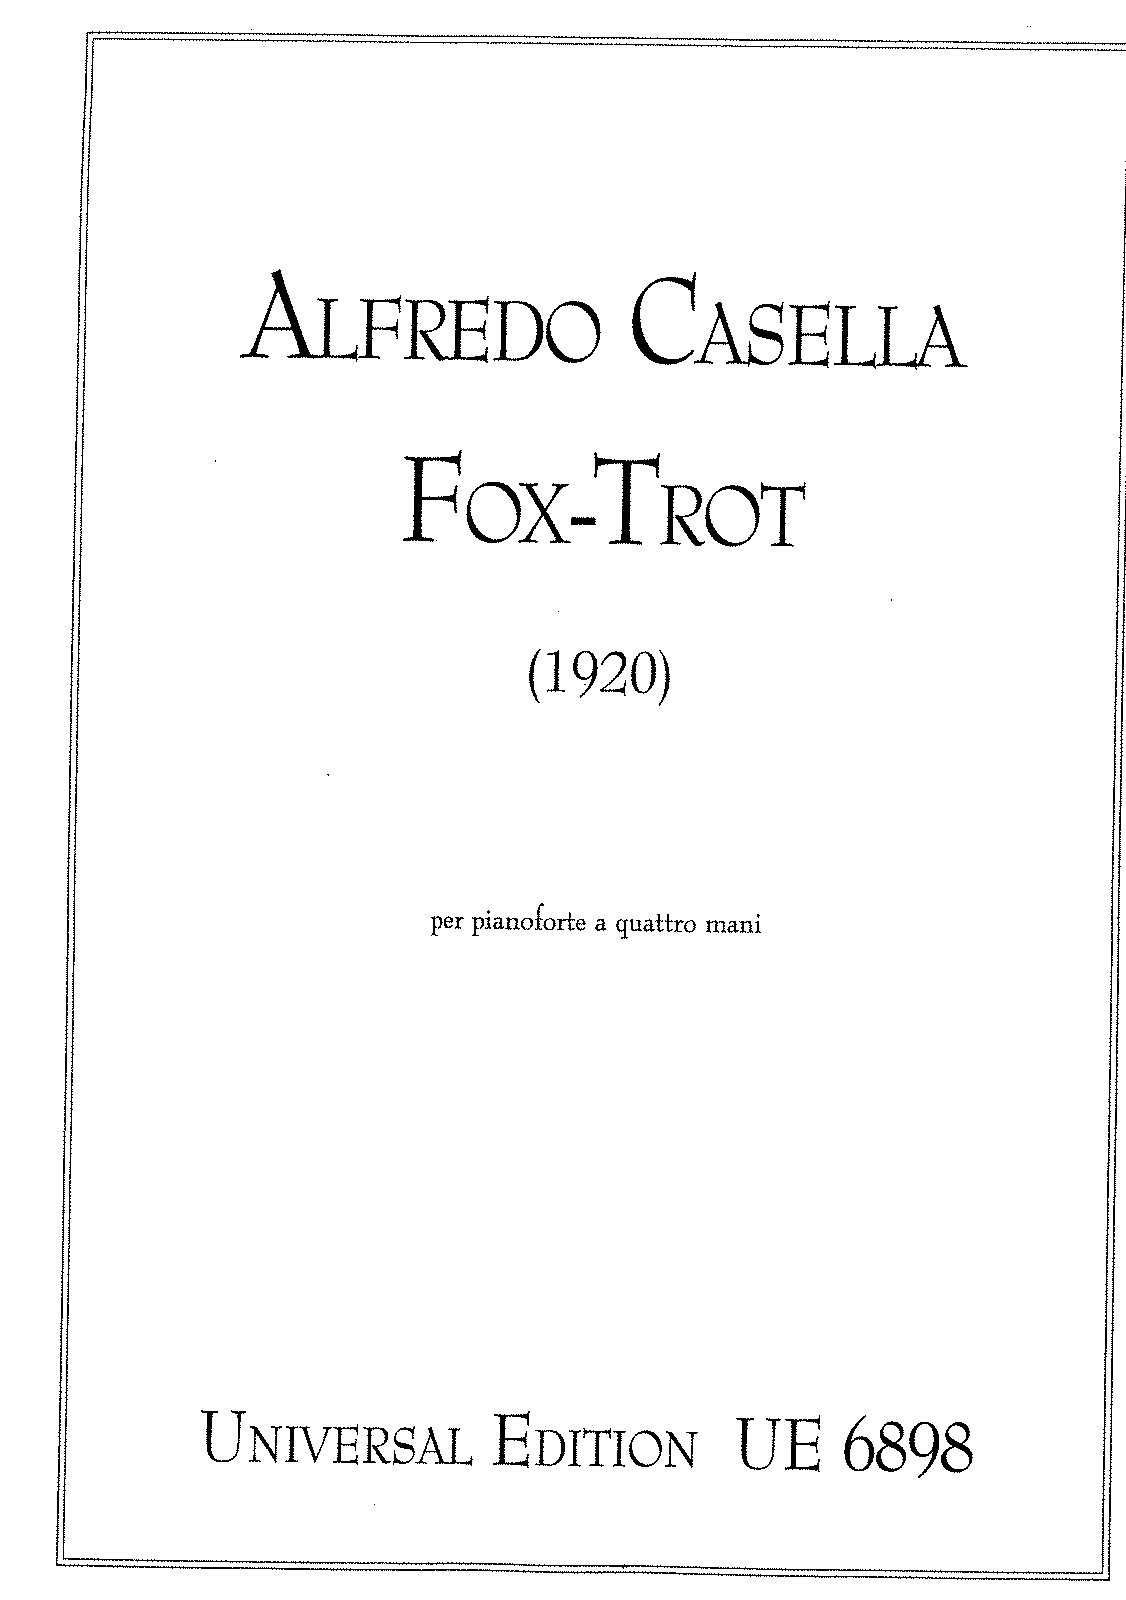 PMLP91152-Casella - Fox-Trot for 4 hands piano.pdf